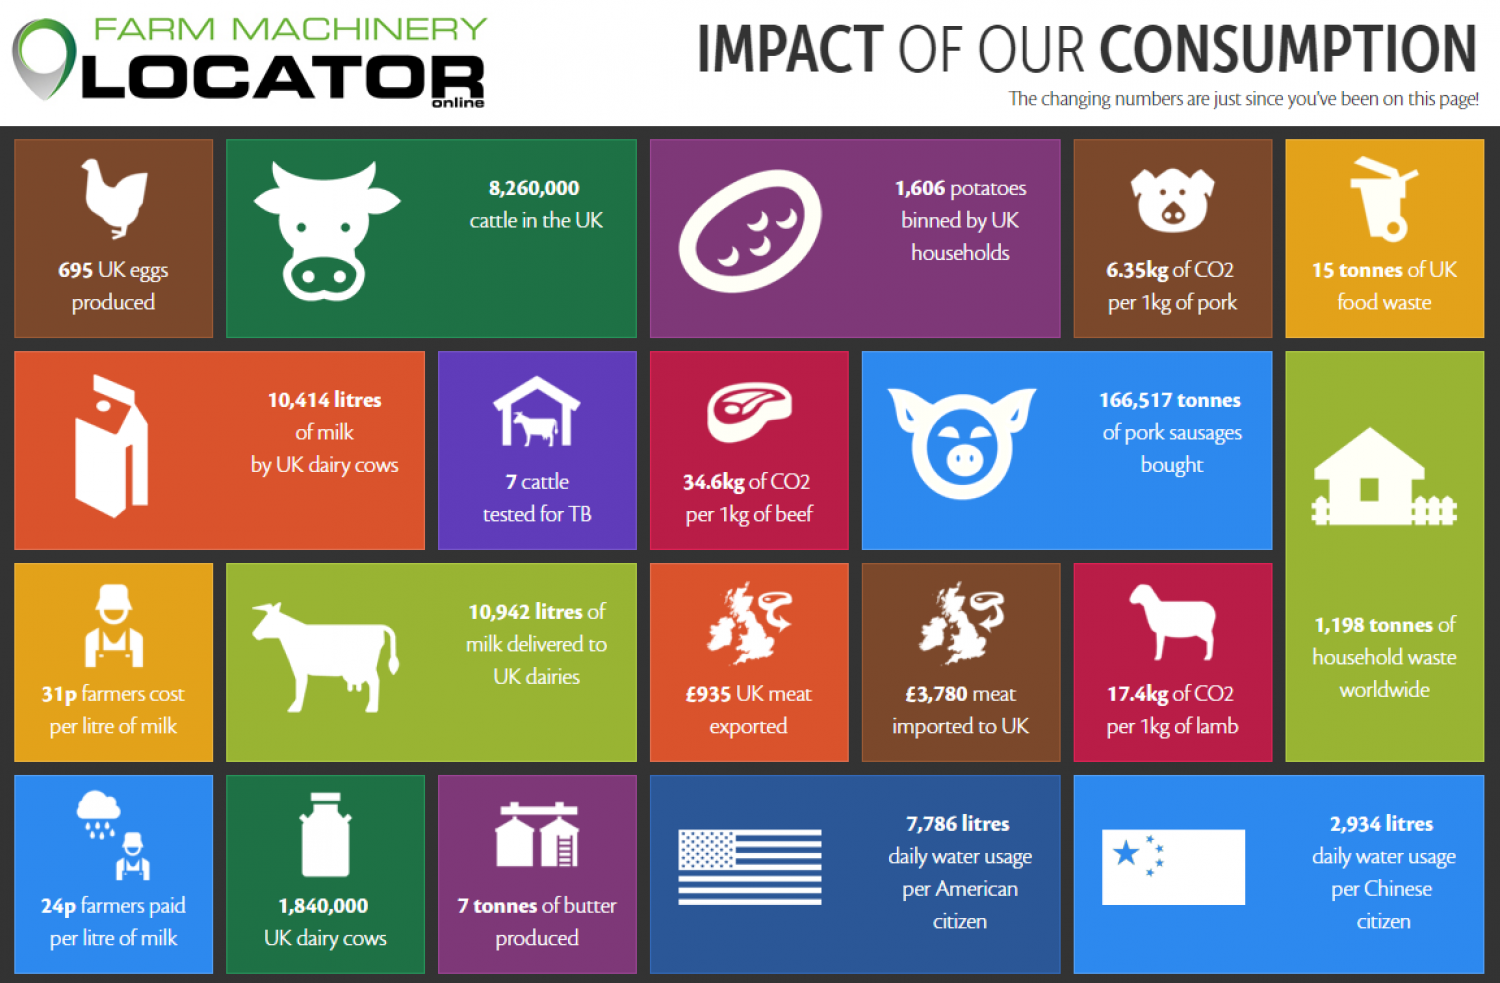 The Impact of Our Consumption Infographic